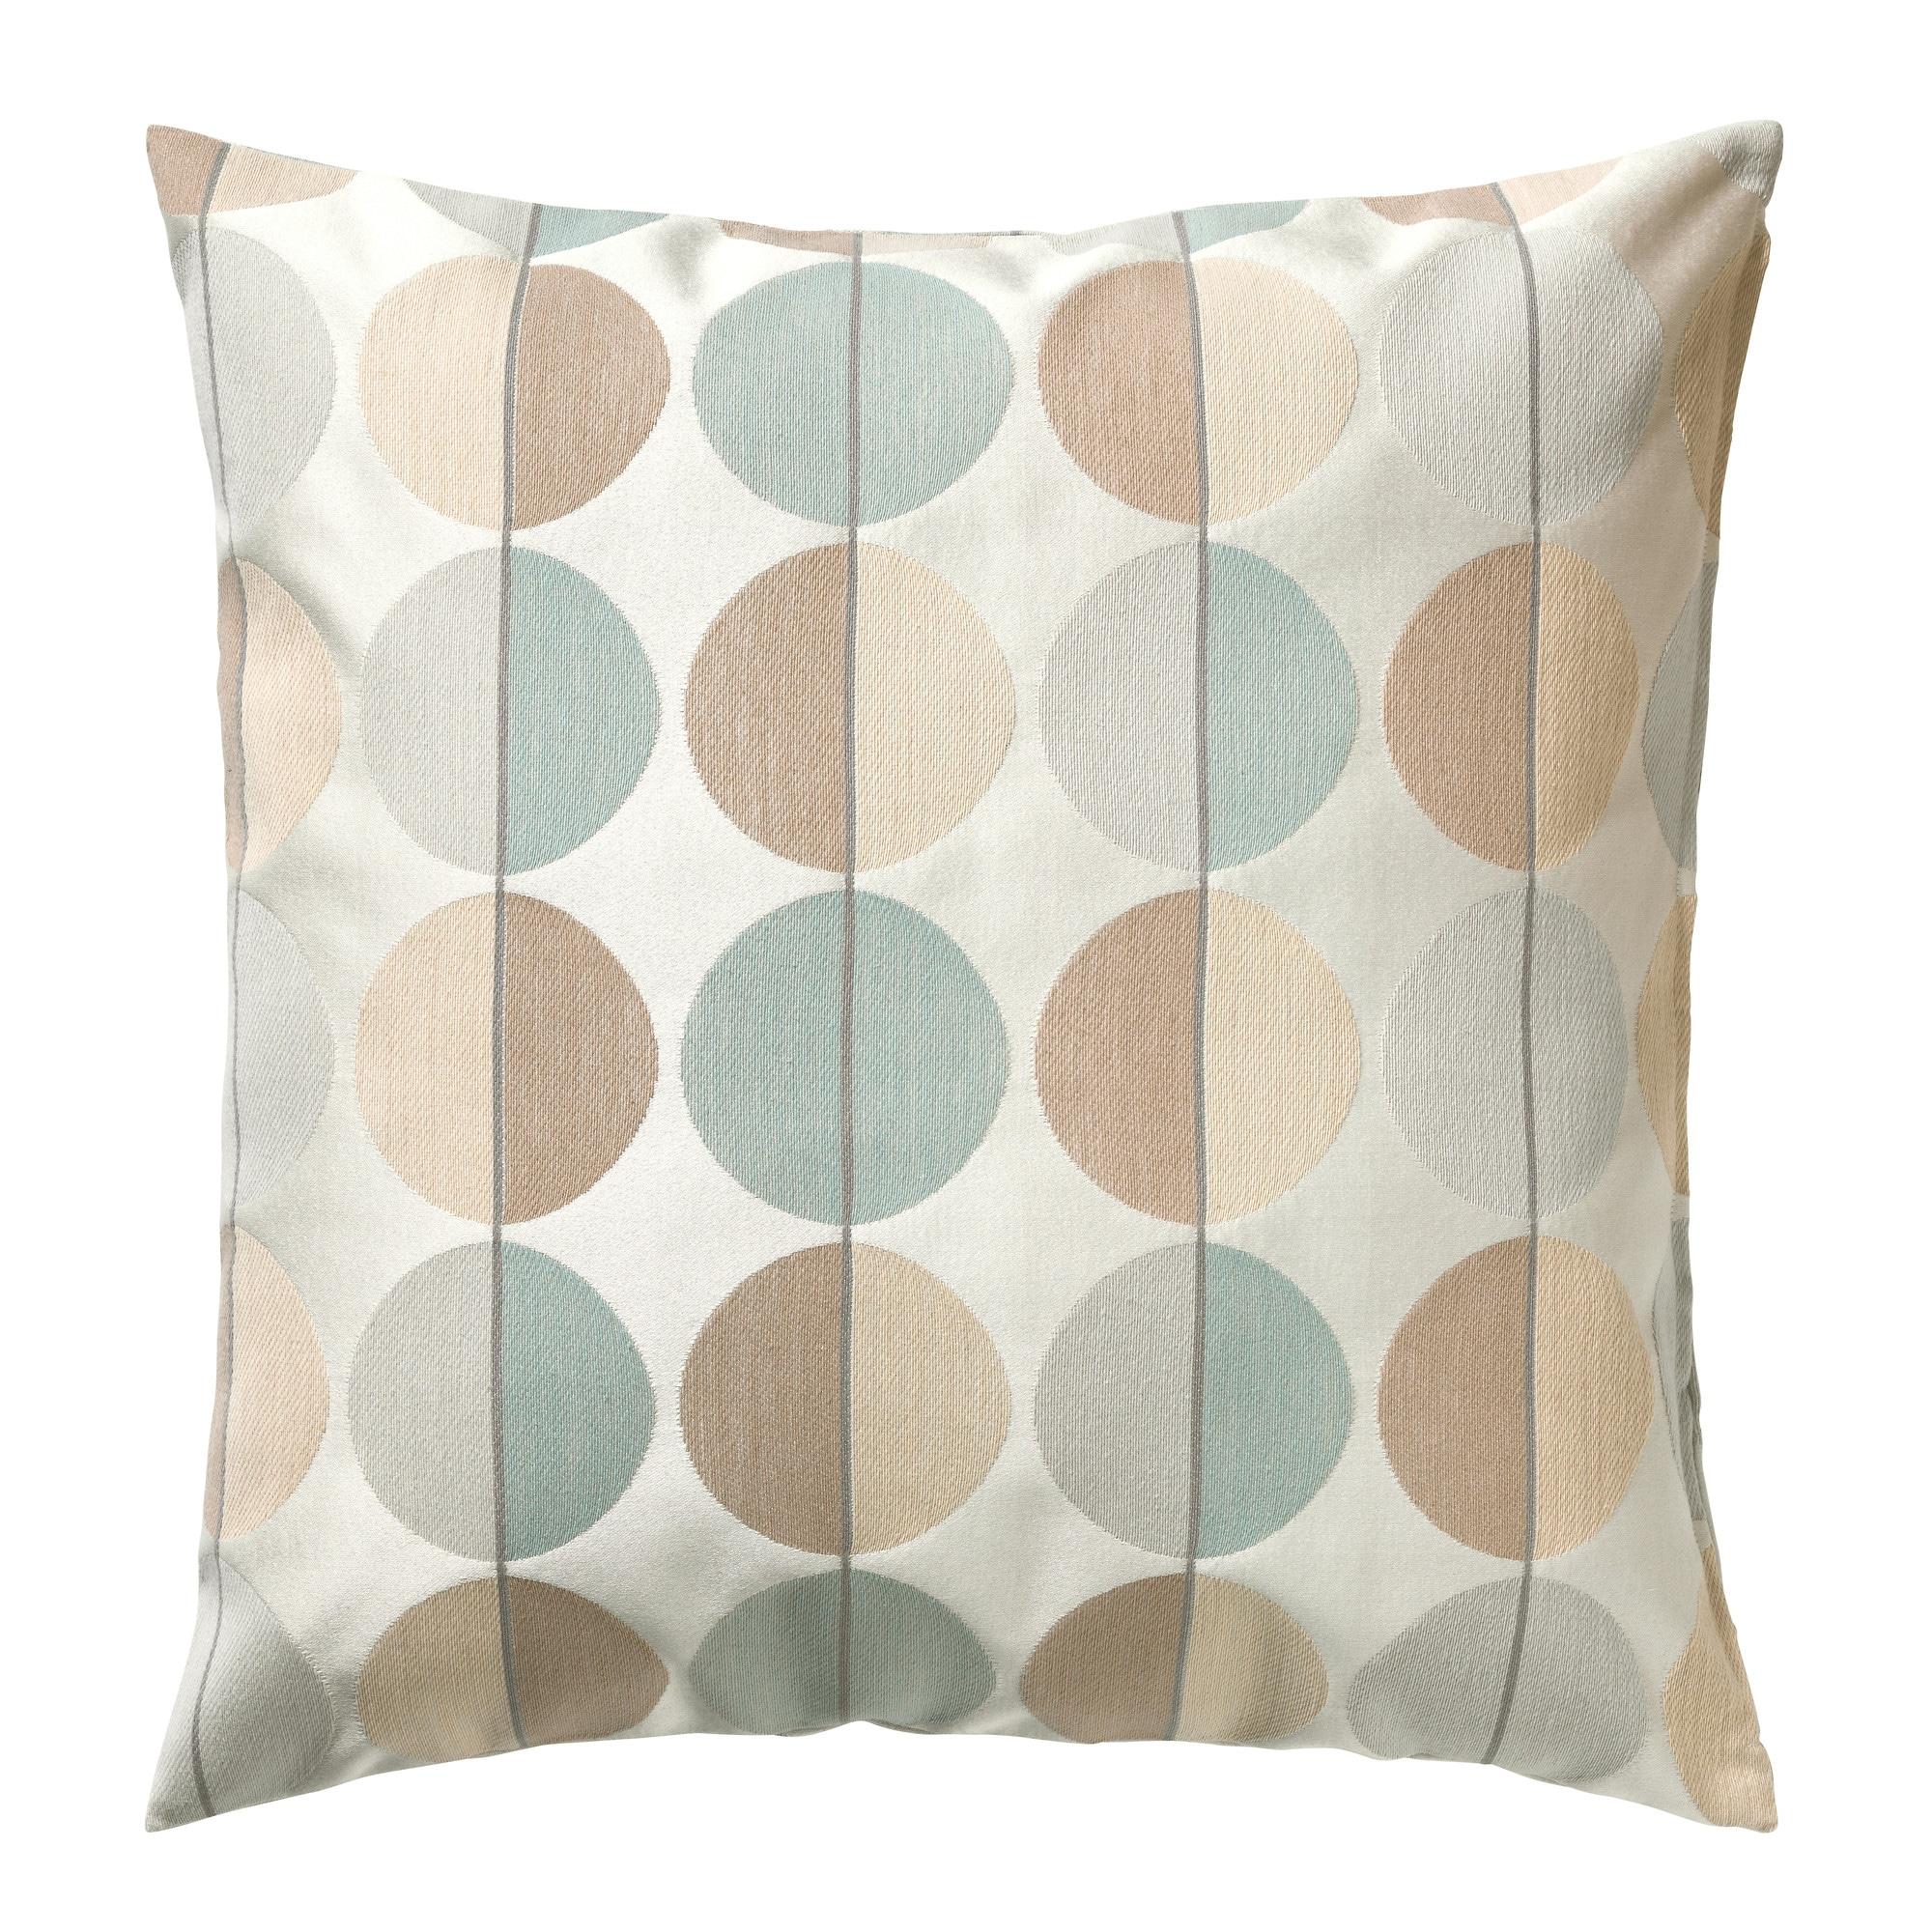 OTTIL Cushion cover IKEA